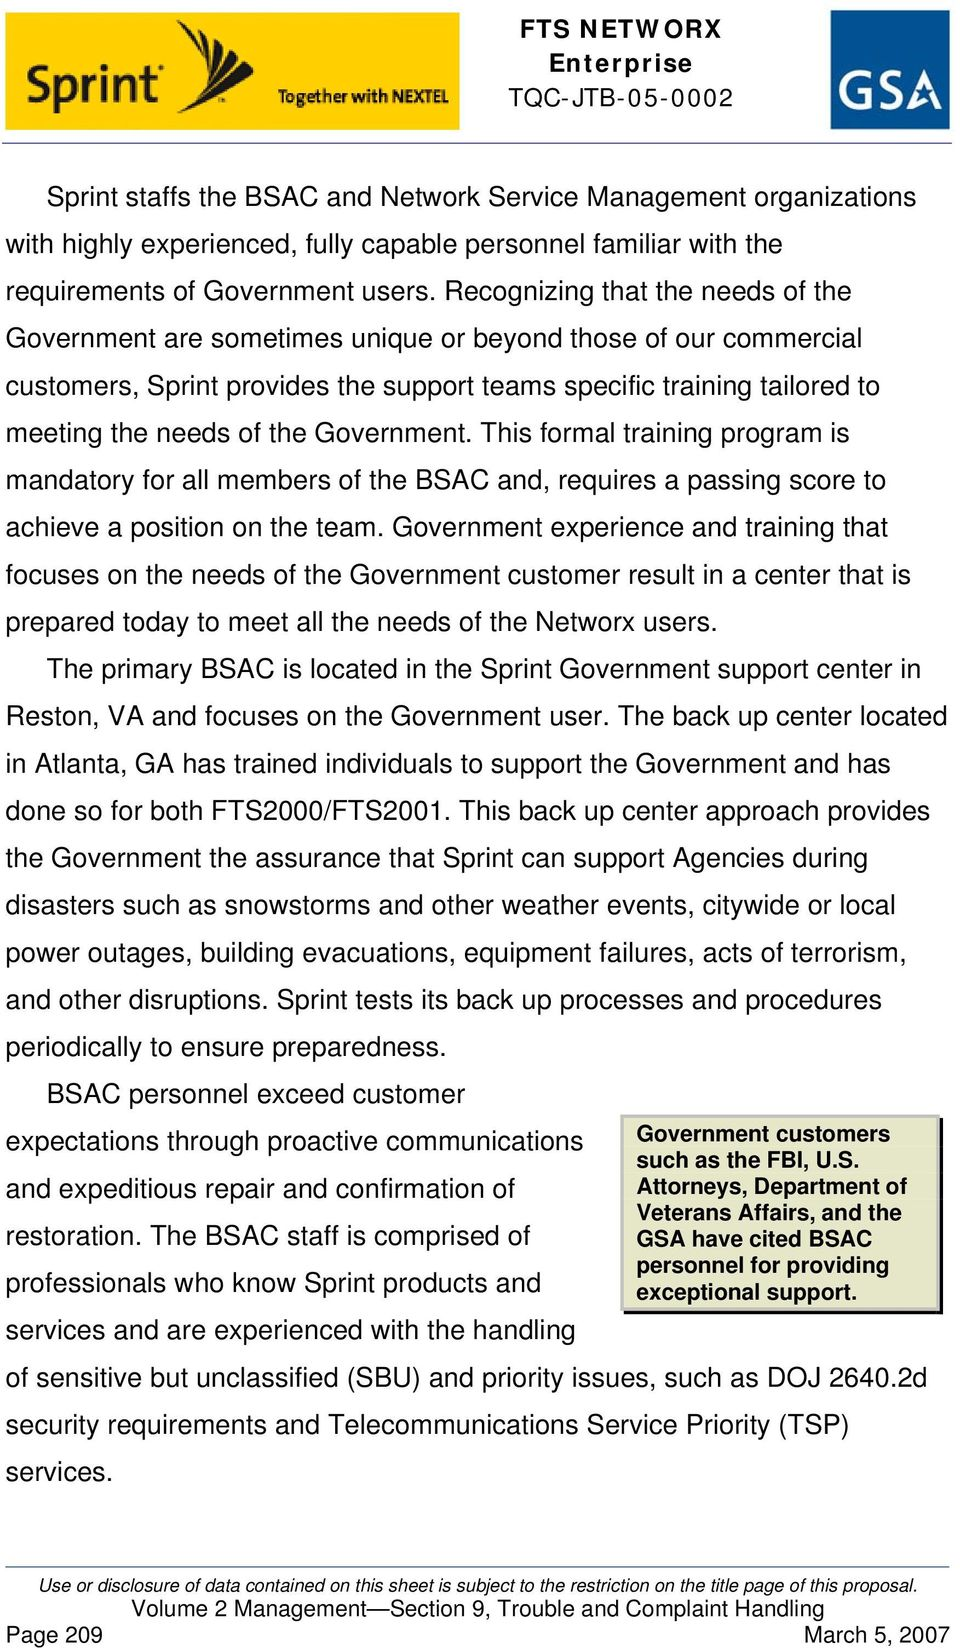 Government. This formal training program is mandatory for all members of the BSAC and, requires a passing score to achieve a position on the team.